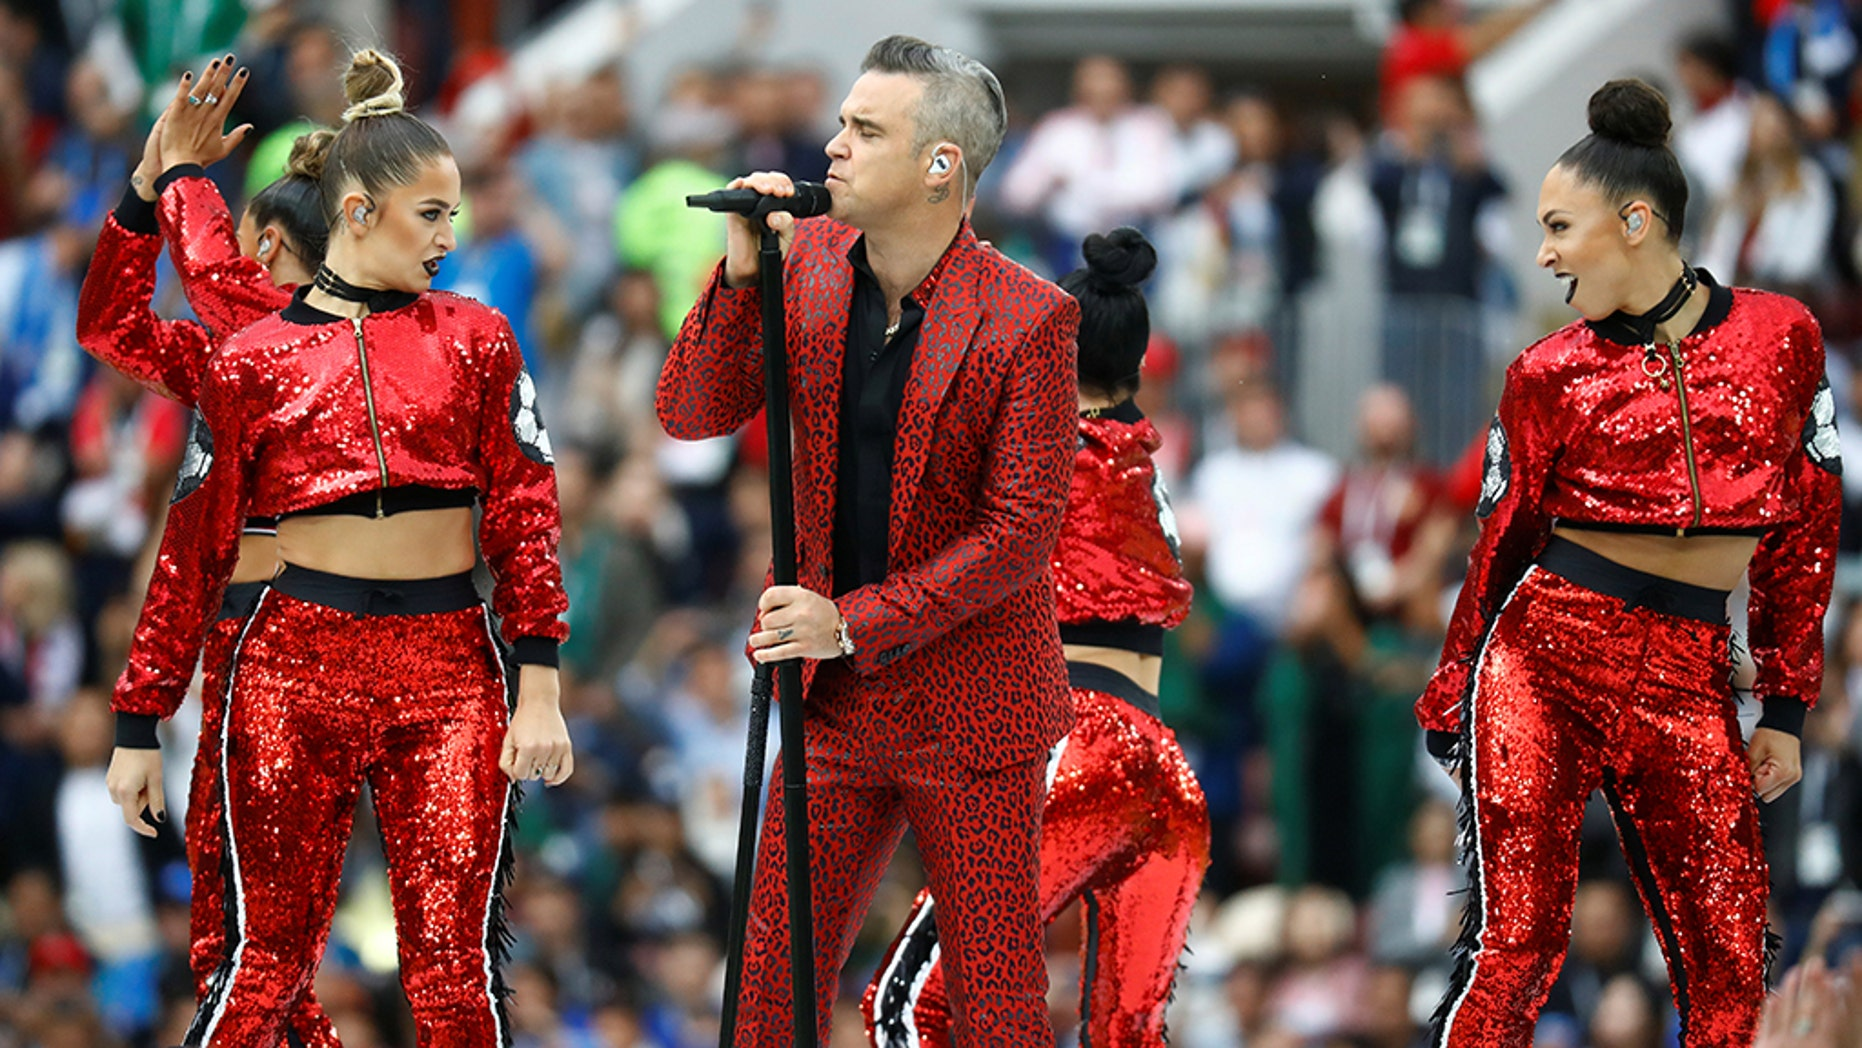 Robbie Williams performs during the opening ceremony of the World Cup.